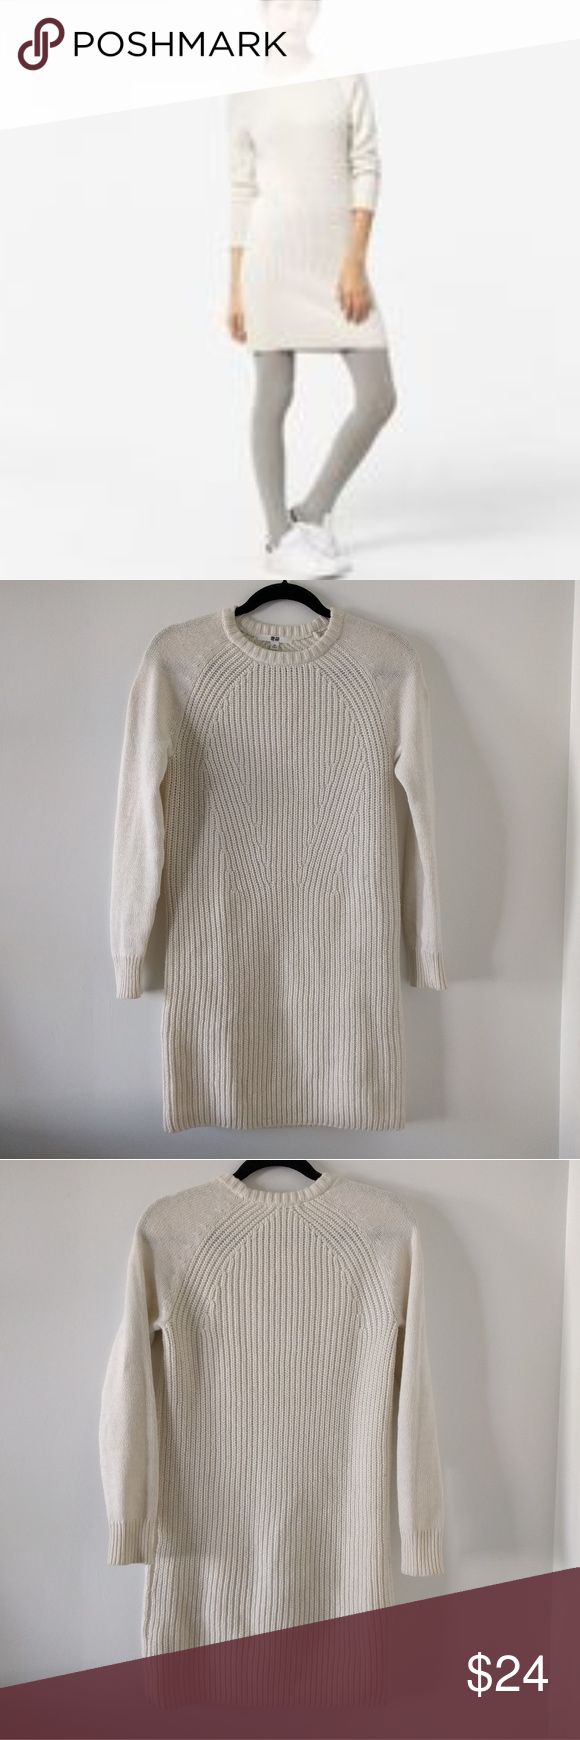 Uniqlo Heat Tech Cream Knit Sweater Dress Size XS Beautiful, soft and warm! The knit is all the same color but features raglan look sleeves. I'm pretty sure I only wore it once; no holes, stains or pilling. Looks great with brown, black or tan accessories and is the perfect canvas for accessorizing. edge it up with a Moto jacket or go extra comfy with a blanket scarf. Sorry, no trades. Uniqlo Dresses Long Sleeve